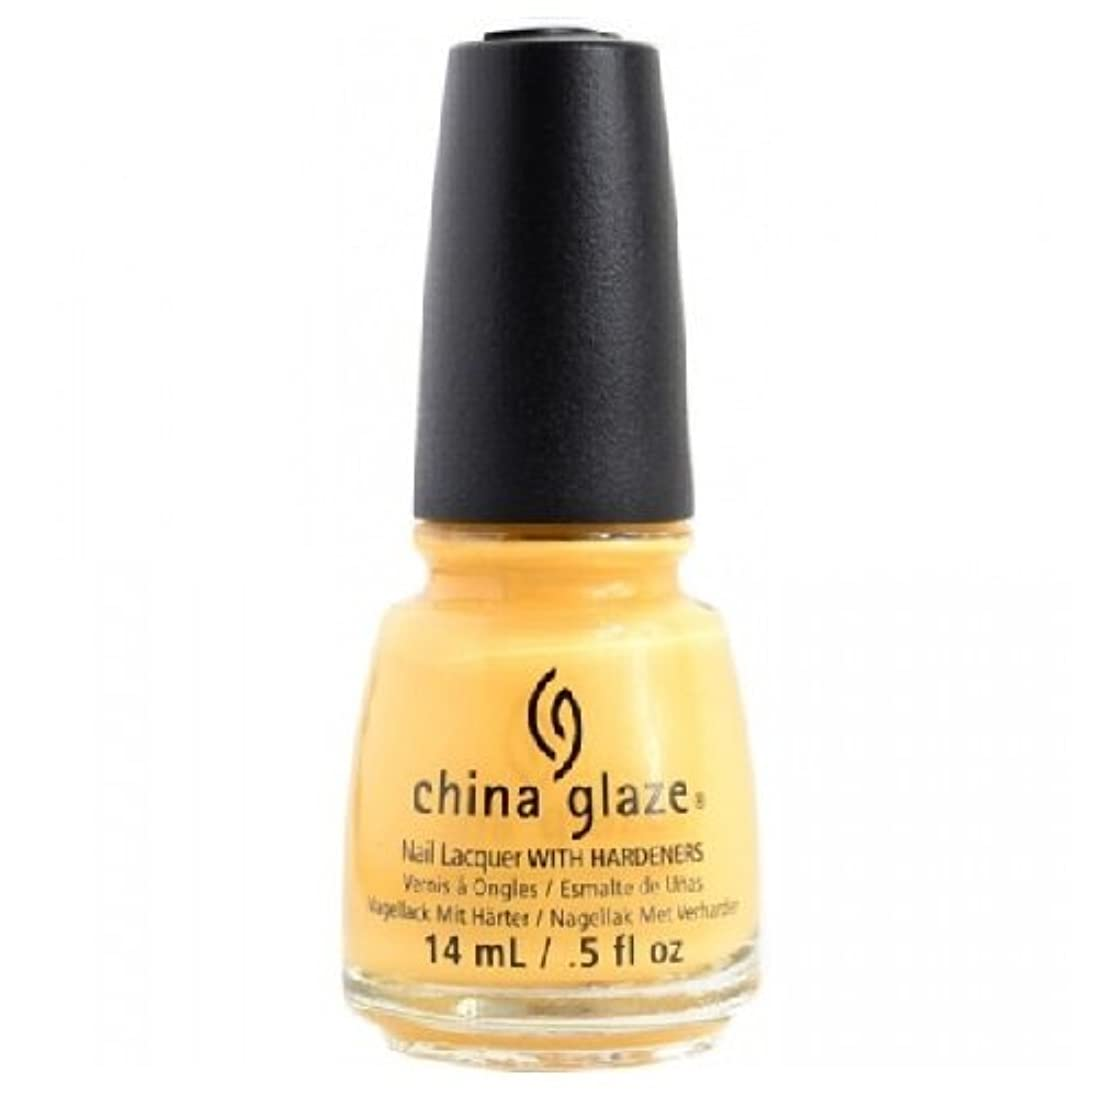 CHINA GLAZE Nail Lacquer - Art City Flourish - Metro Pollen-Tin